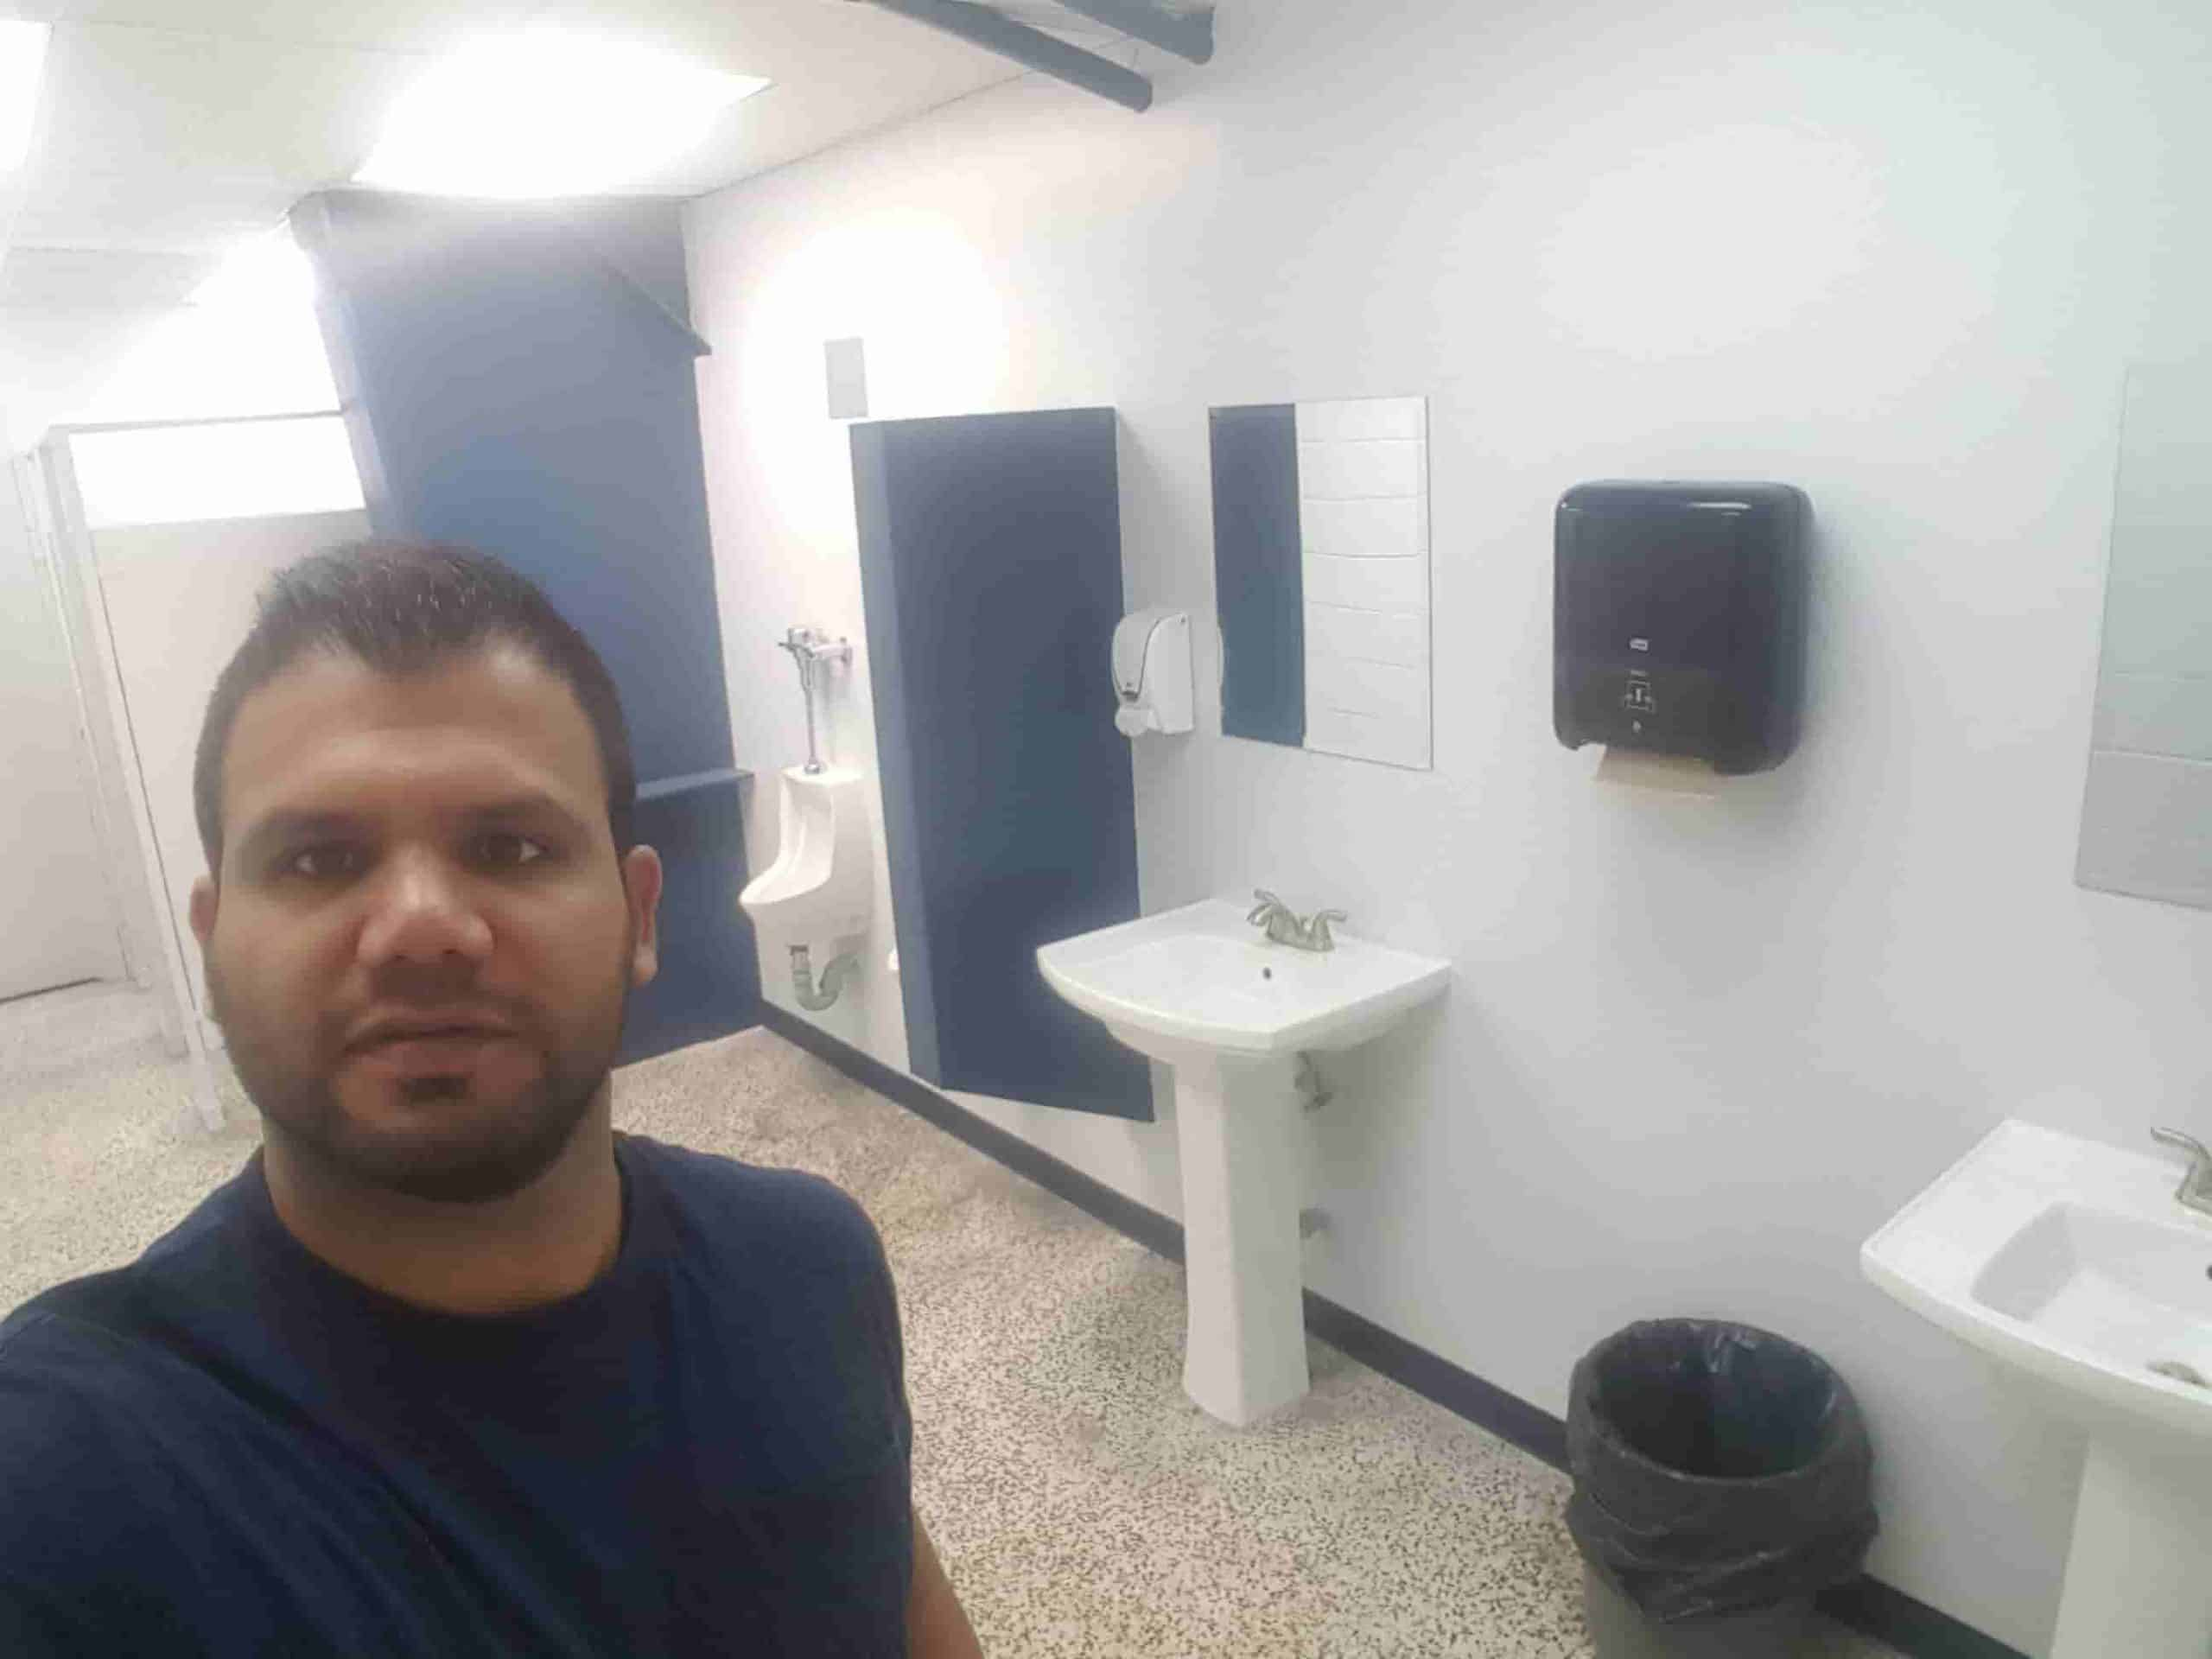 Plumbing of the new washroom at billy bishop Toronto airport